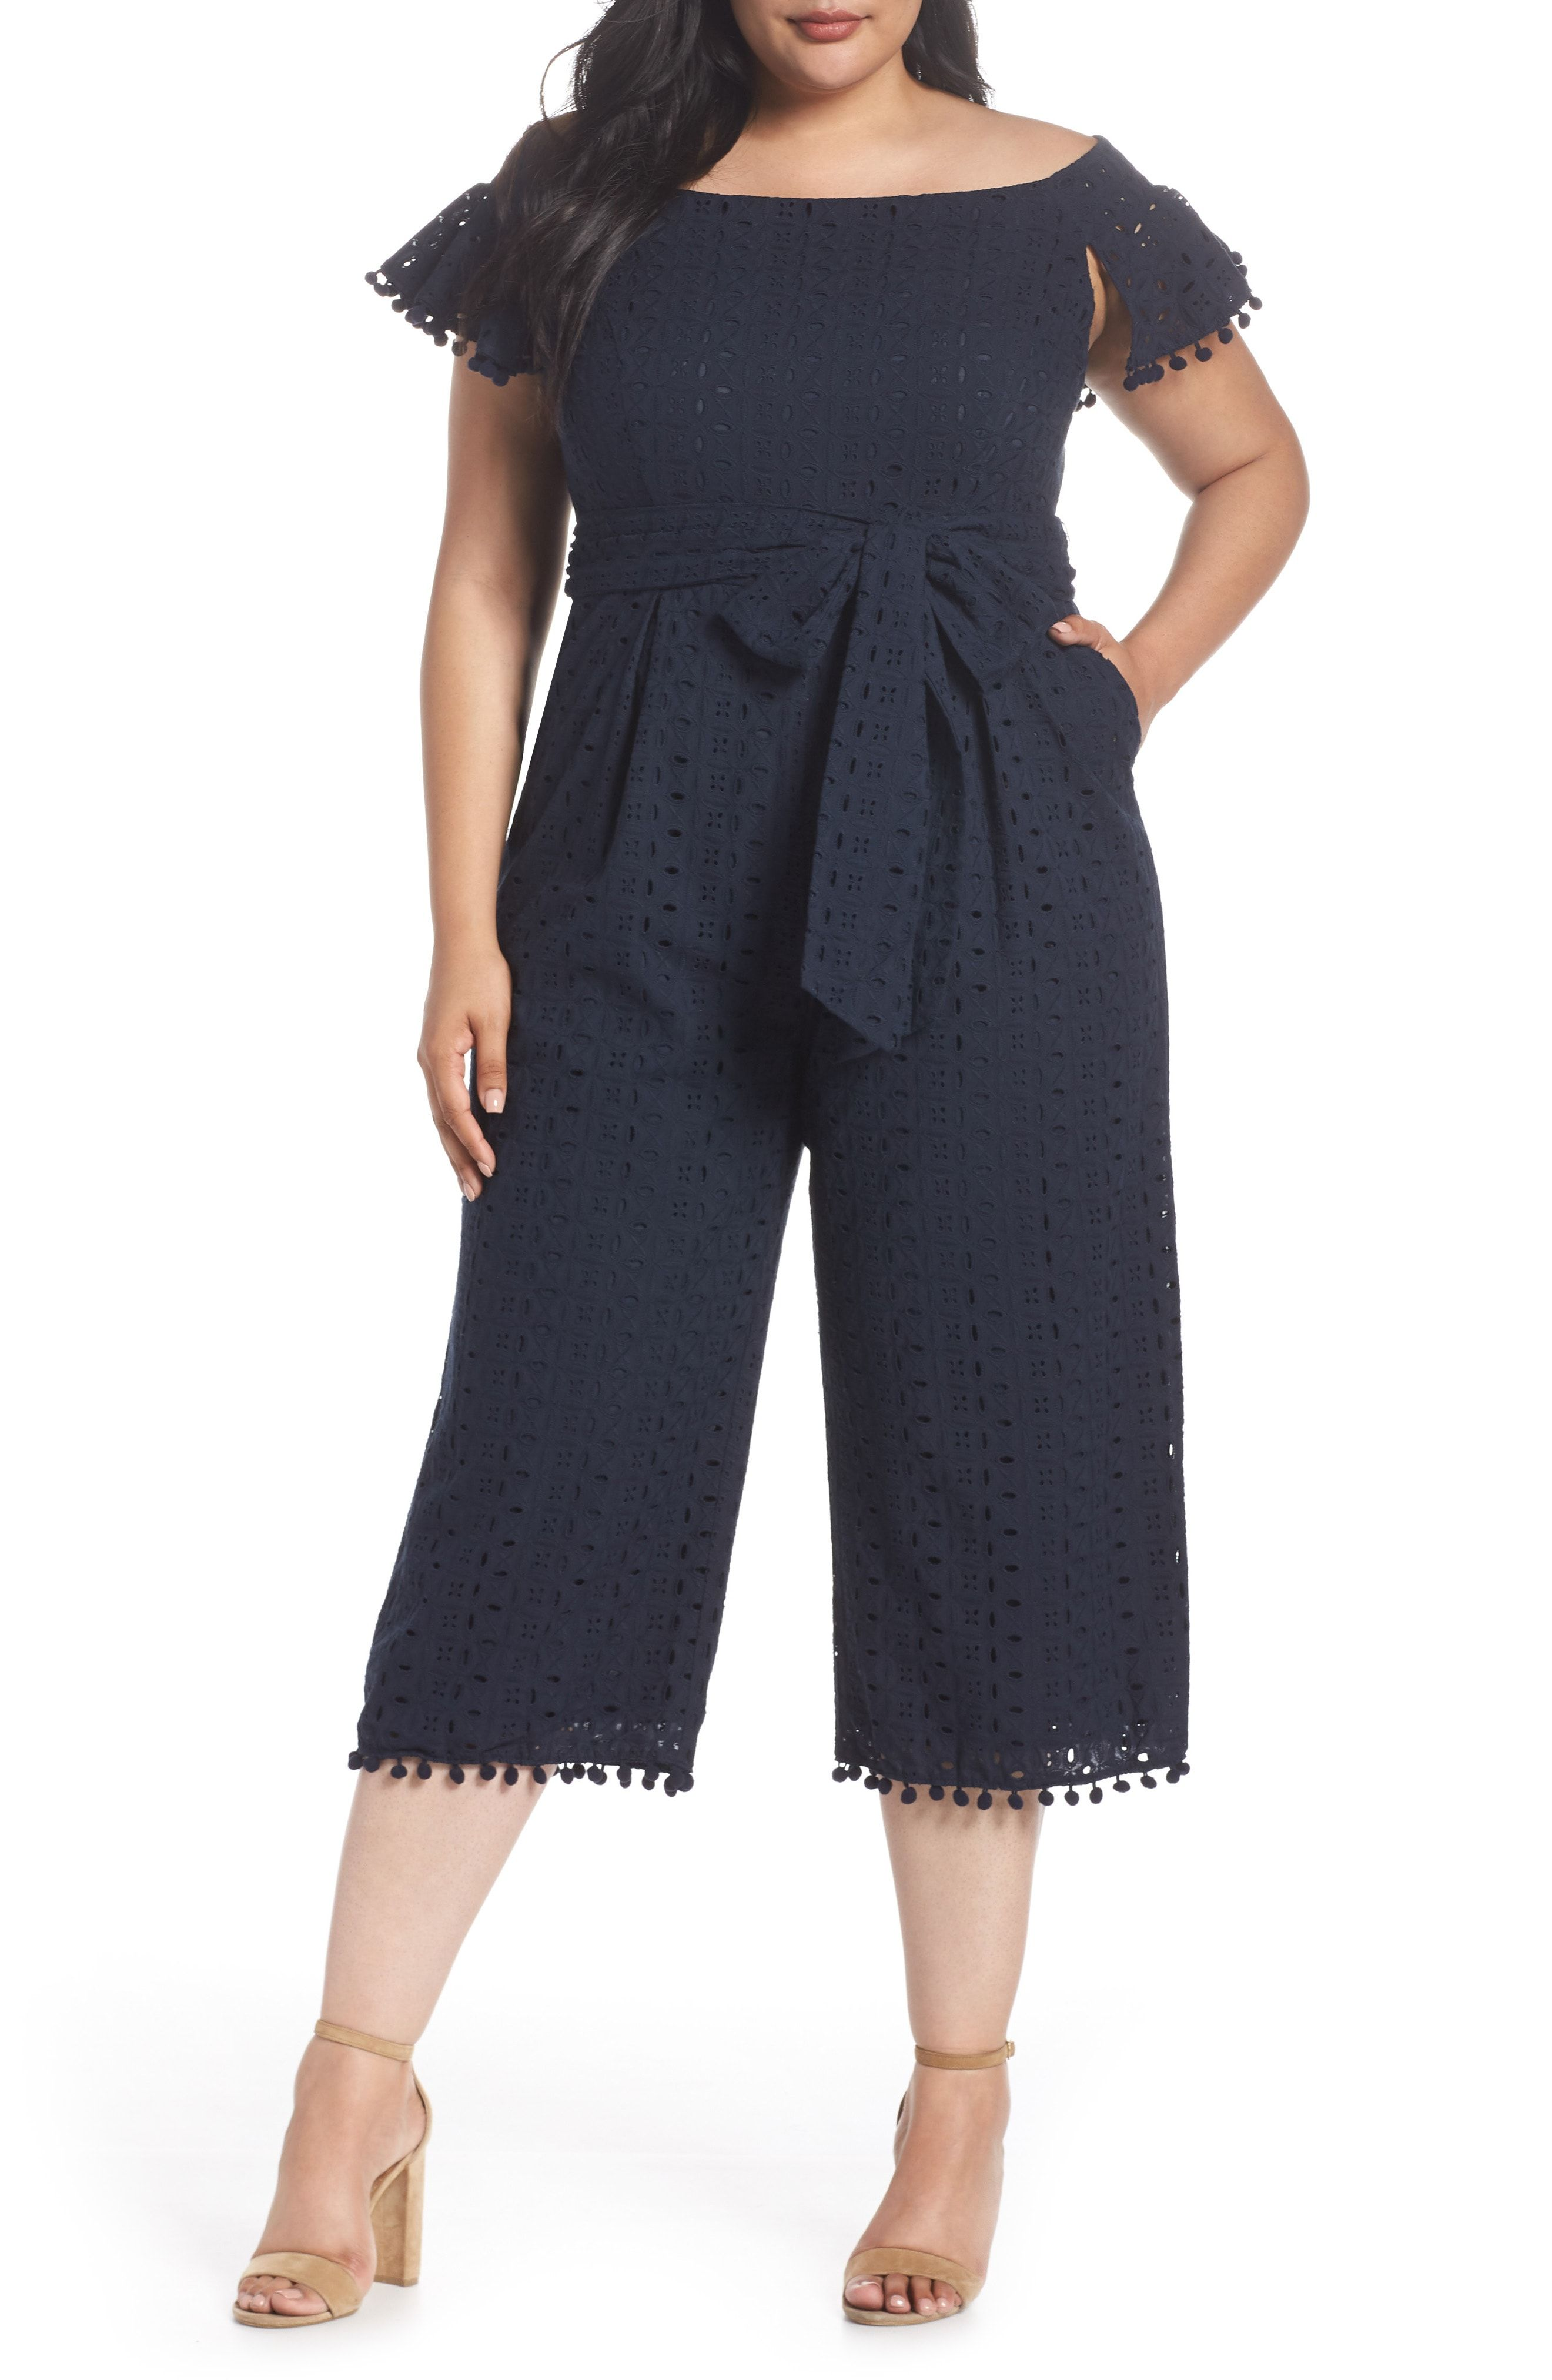 e3c11a4ef46 Buy Chelsea28 Off the Shoulder Pom Trim Eyelet Jumpsuit online. Sku  lezs72086pgqg42685